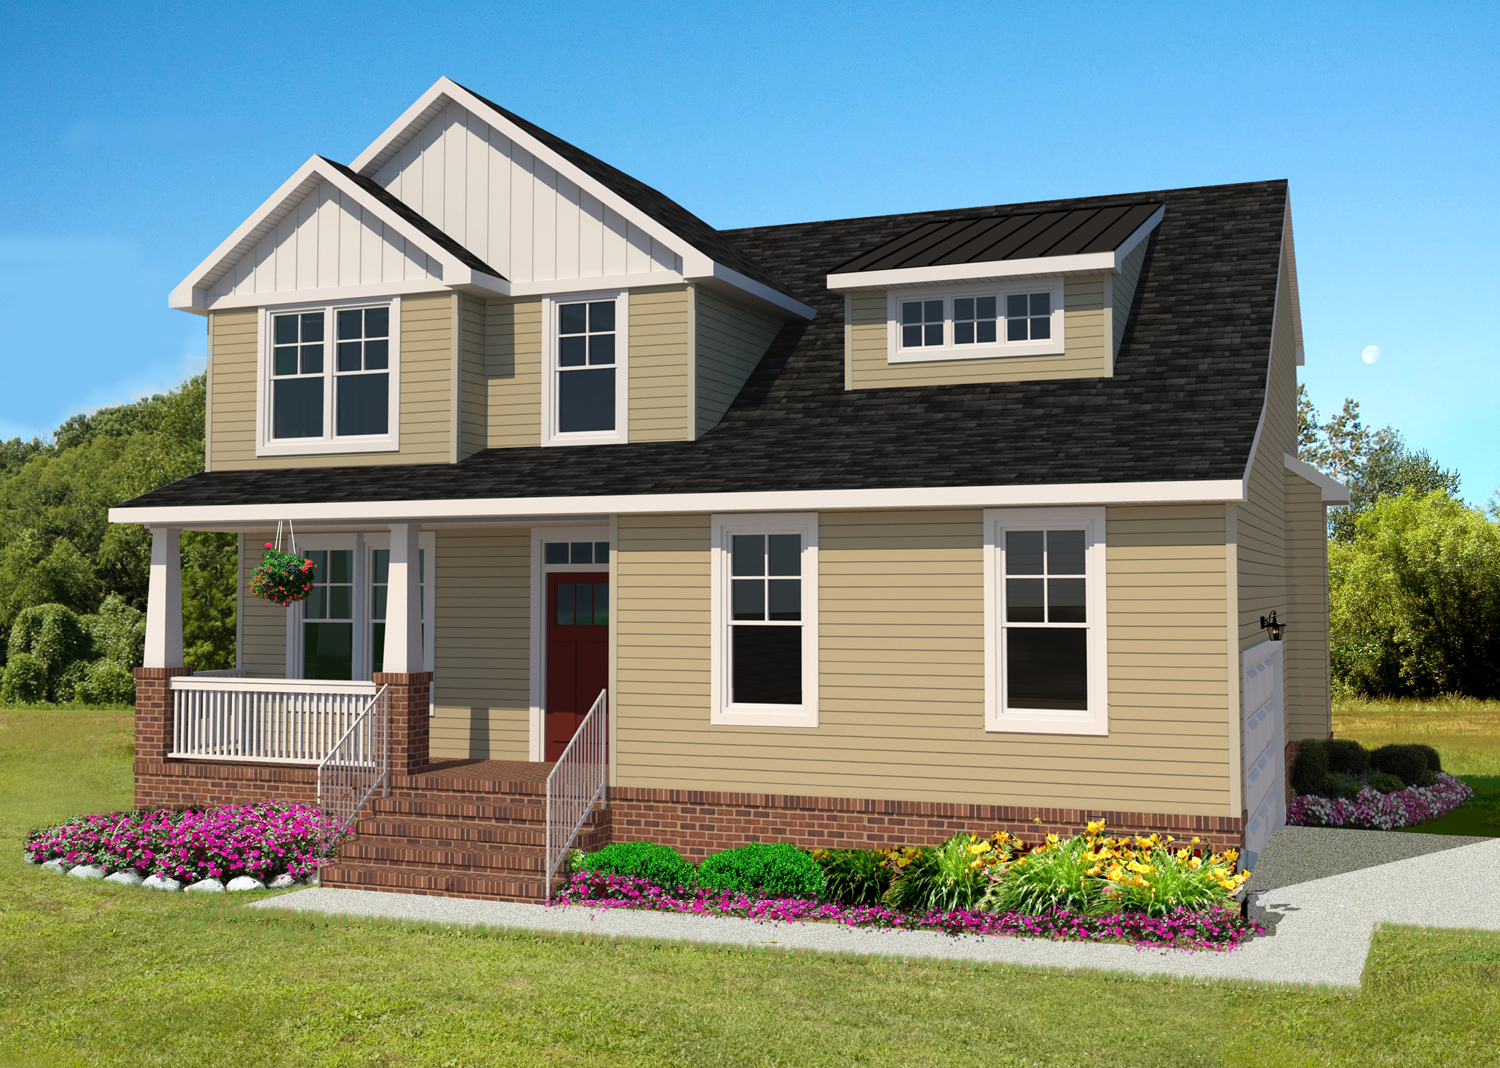 The Holland floor plan by AB Homes featuring two stories with tan siding and white trim with flowers and landscaping